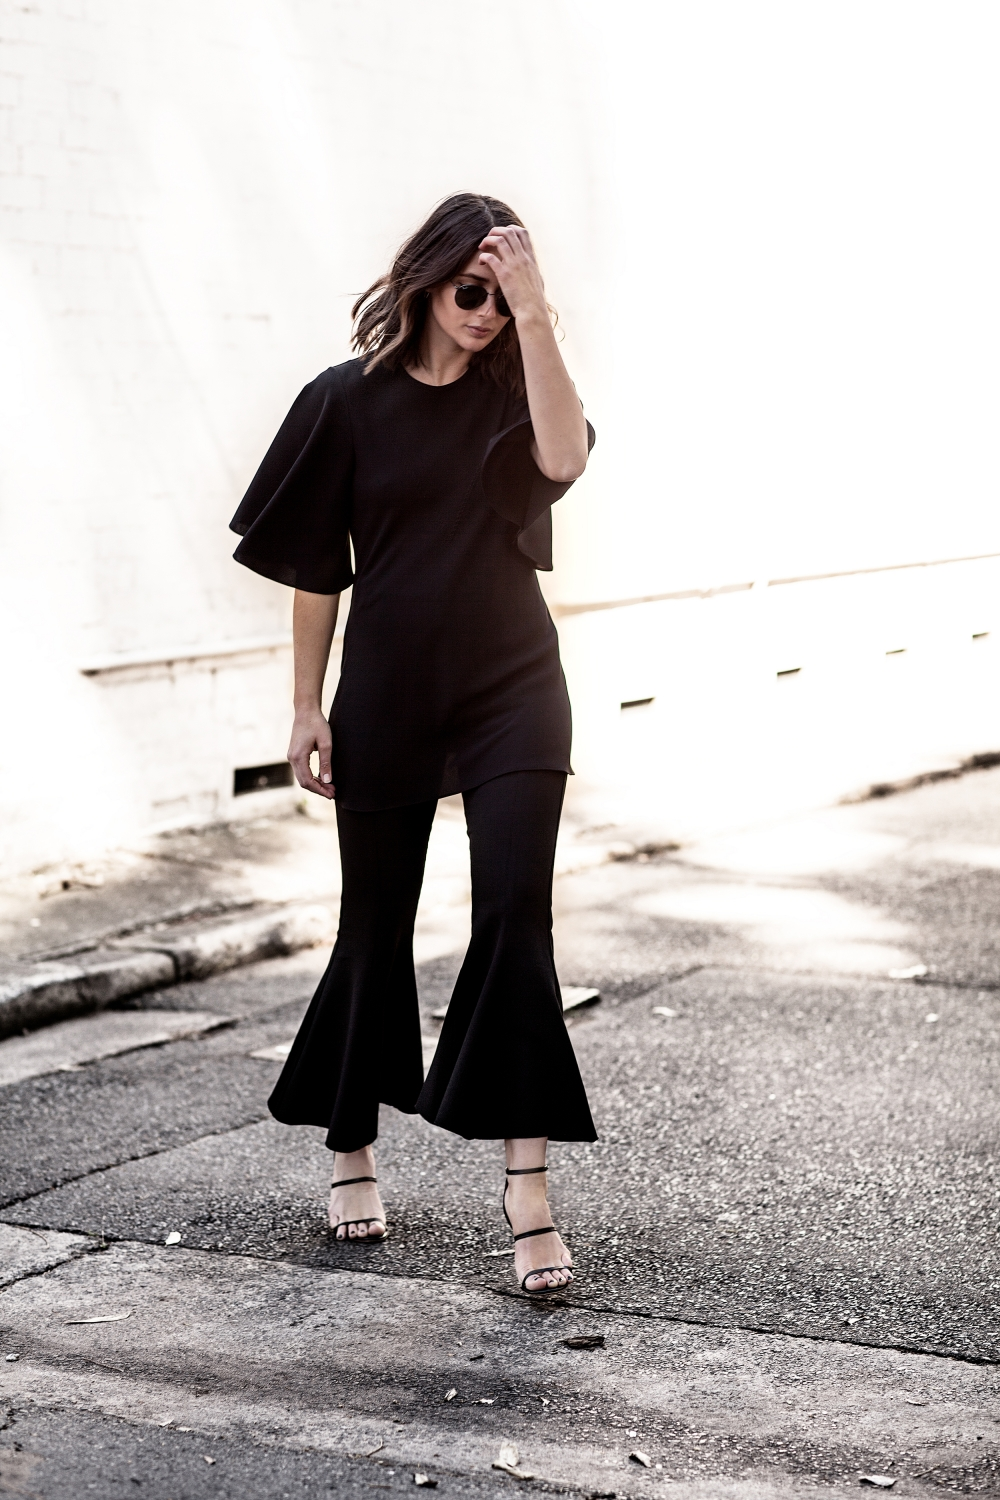 Georgia Alice Black Cropped Flares | Ellery Black Top | Street Style | Outfit | All Black | Harper and Harley